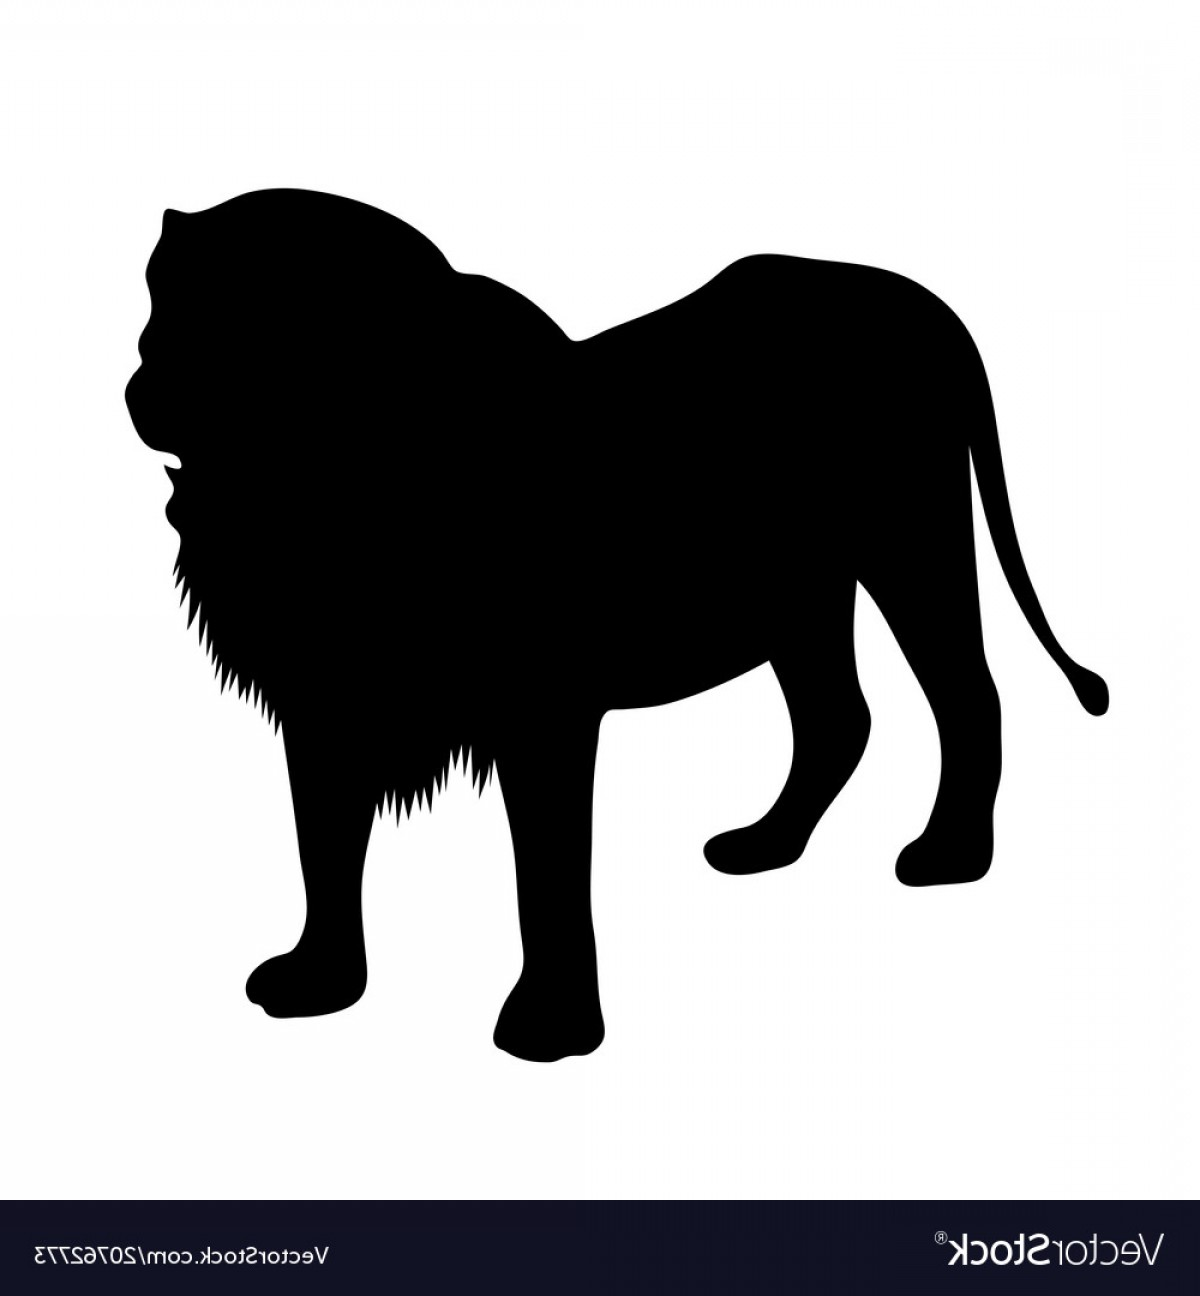 Standing Lions Crest Vector: Black Silhouette Of Standing Lion On White Vector